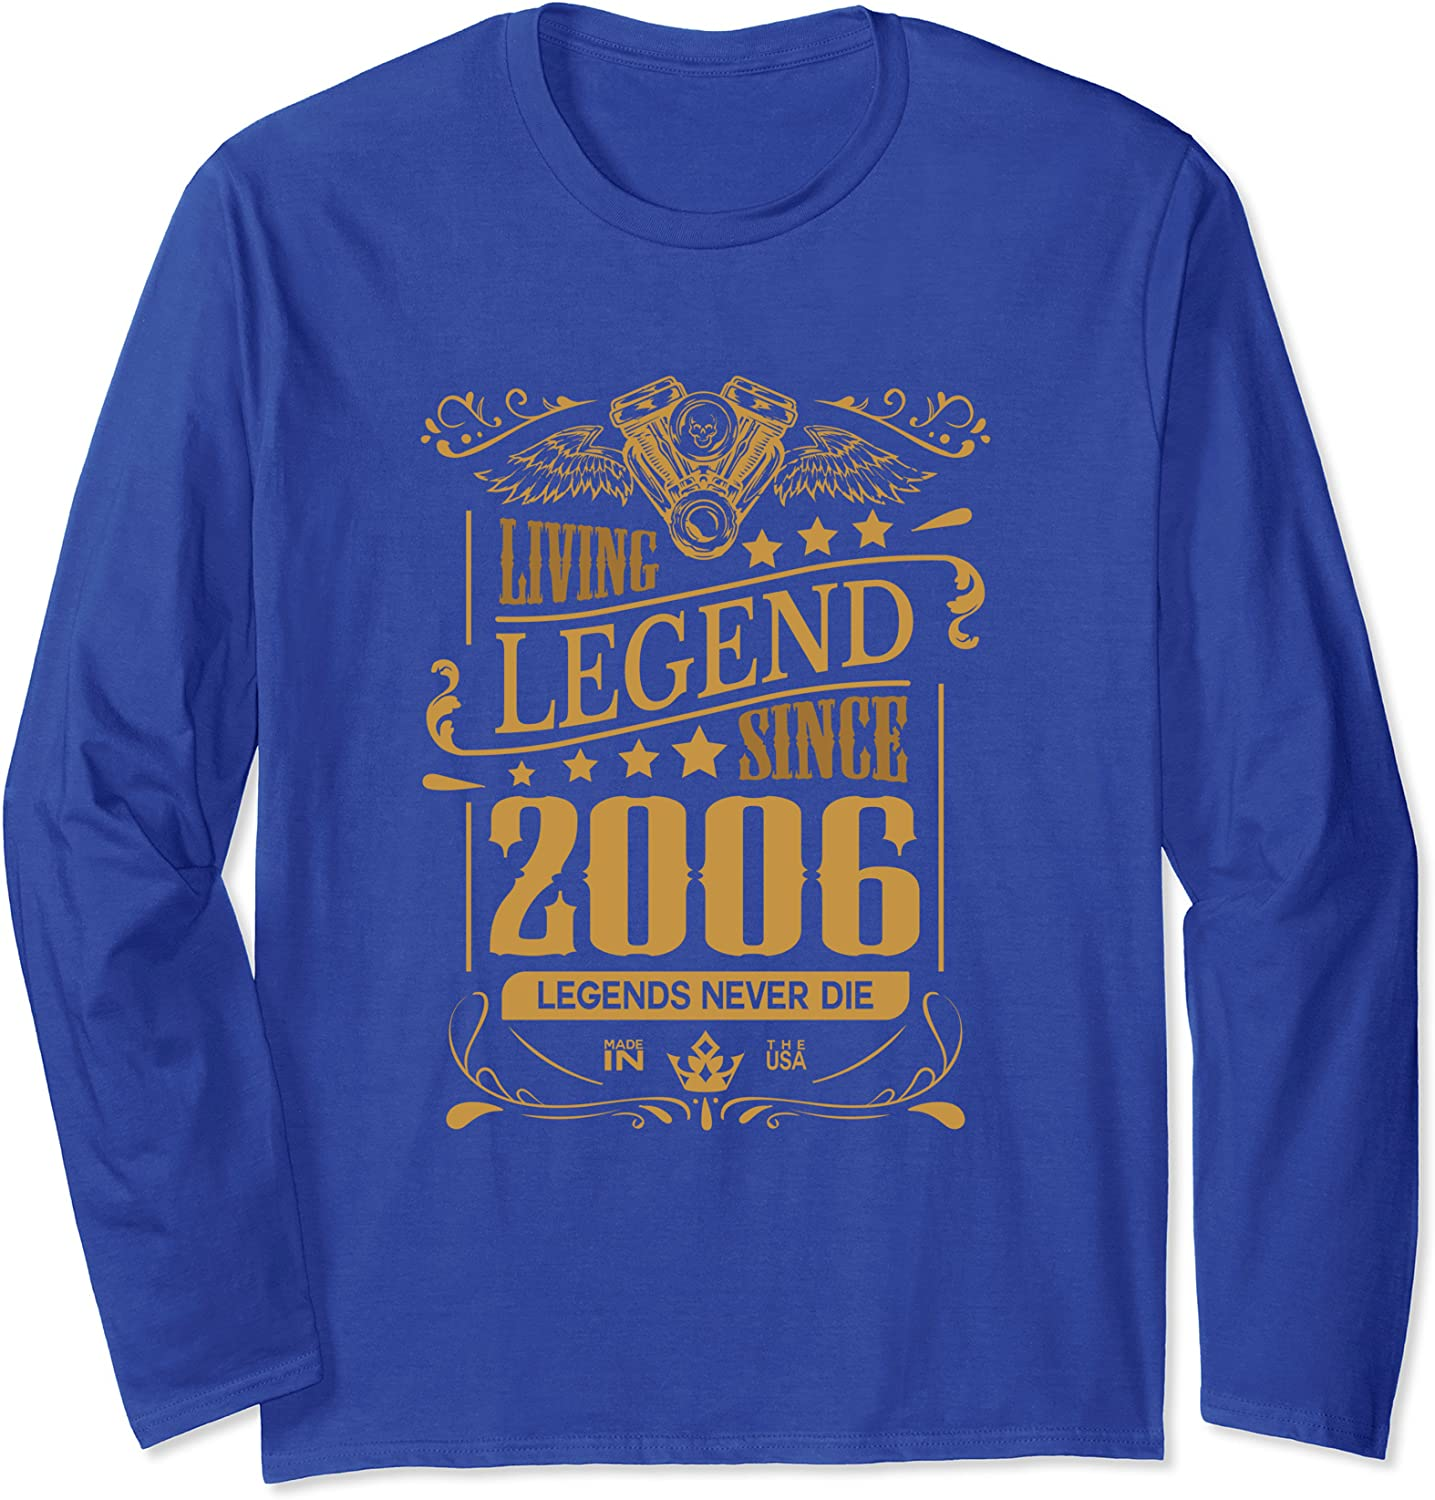 15th Birthday Outfit Boys Girls 15 Year Old His and Her Gift Long Sleeve T-Shirt-TH